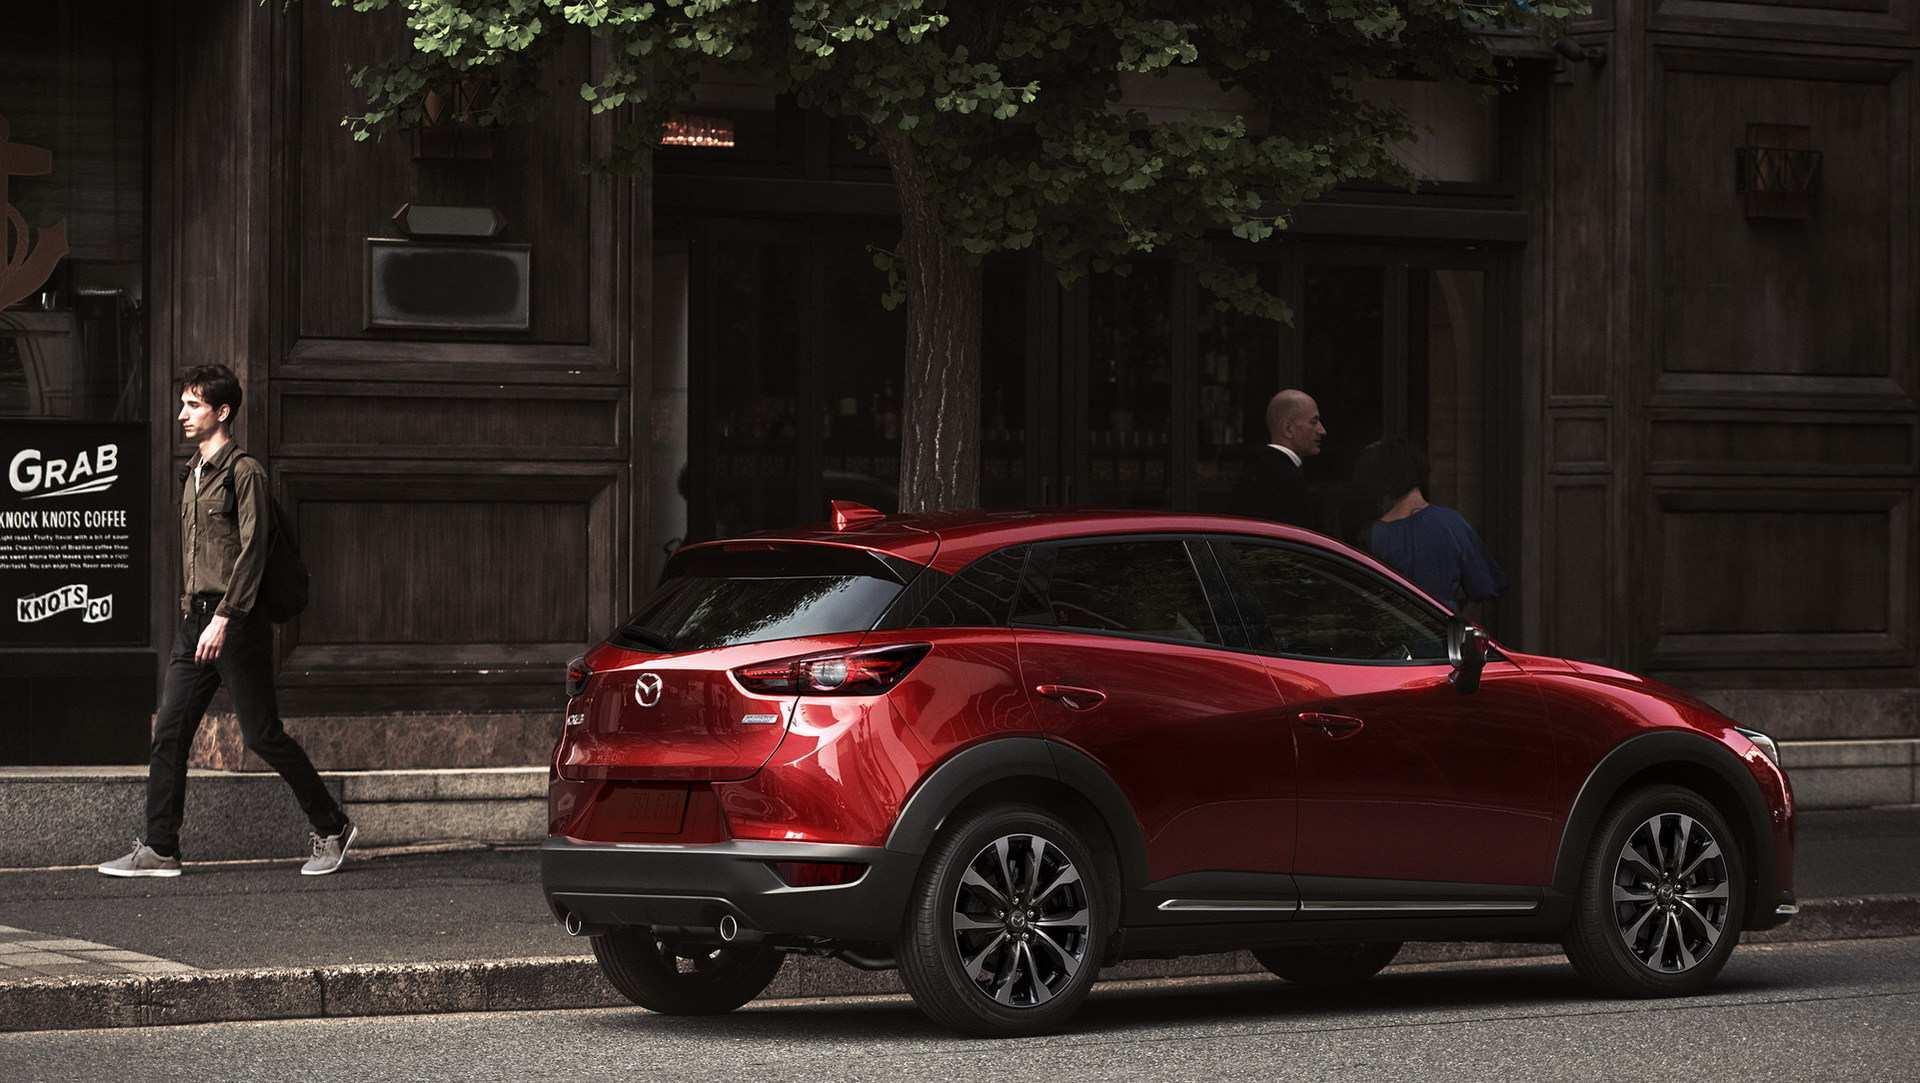 93 Great New Precio Cx3 Mazda 2019 Rumors Ratings for New Precio Cx3 Mazda 2019 Rumors